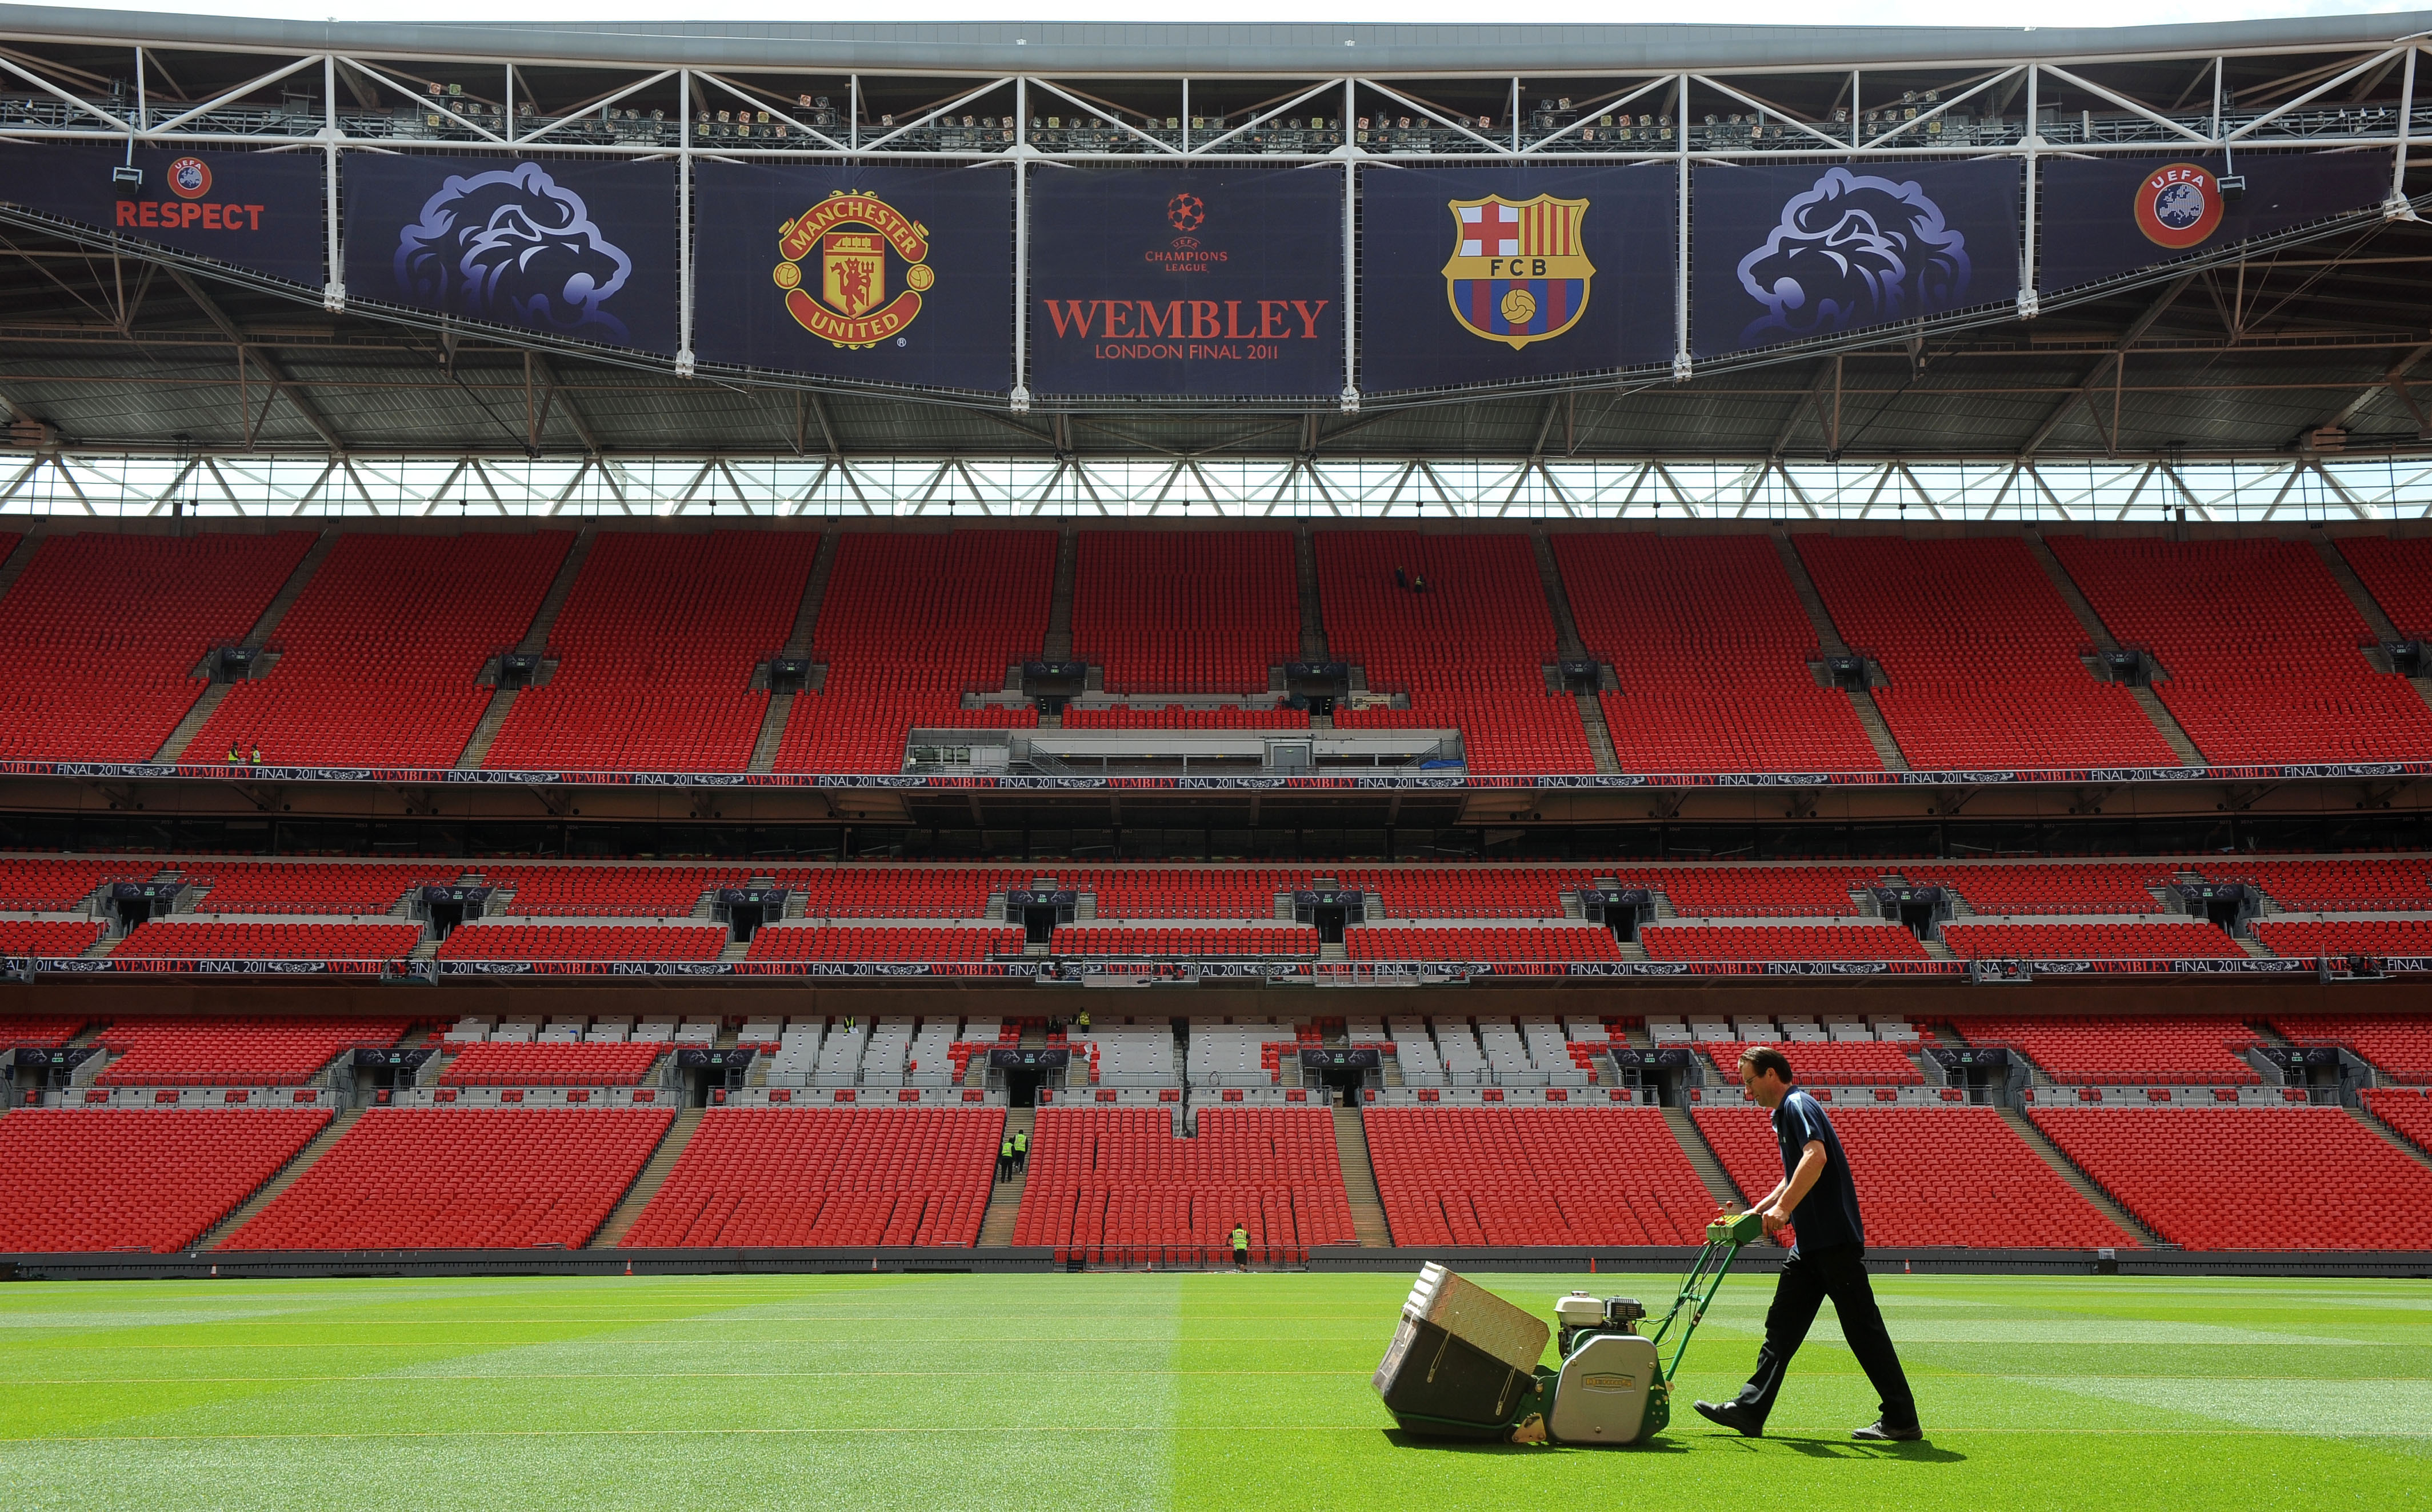 LONDON, UNITED KINGDOM - MAY 24:  In this handout image provided by UEFA, final preparations are made to the pitch at Wembley Stadium for the Champions League Final, May 24, 2011  in London, England. The UEFA Champions League final between FC Barcelona an